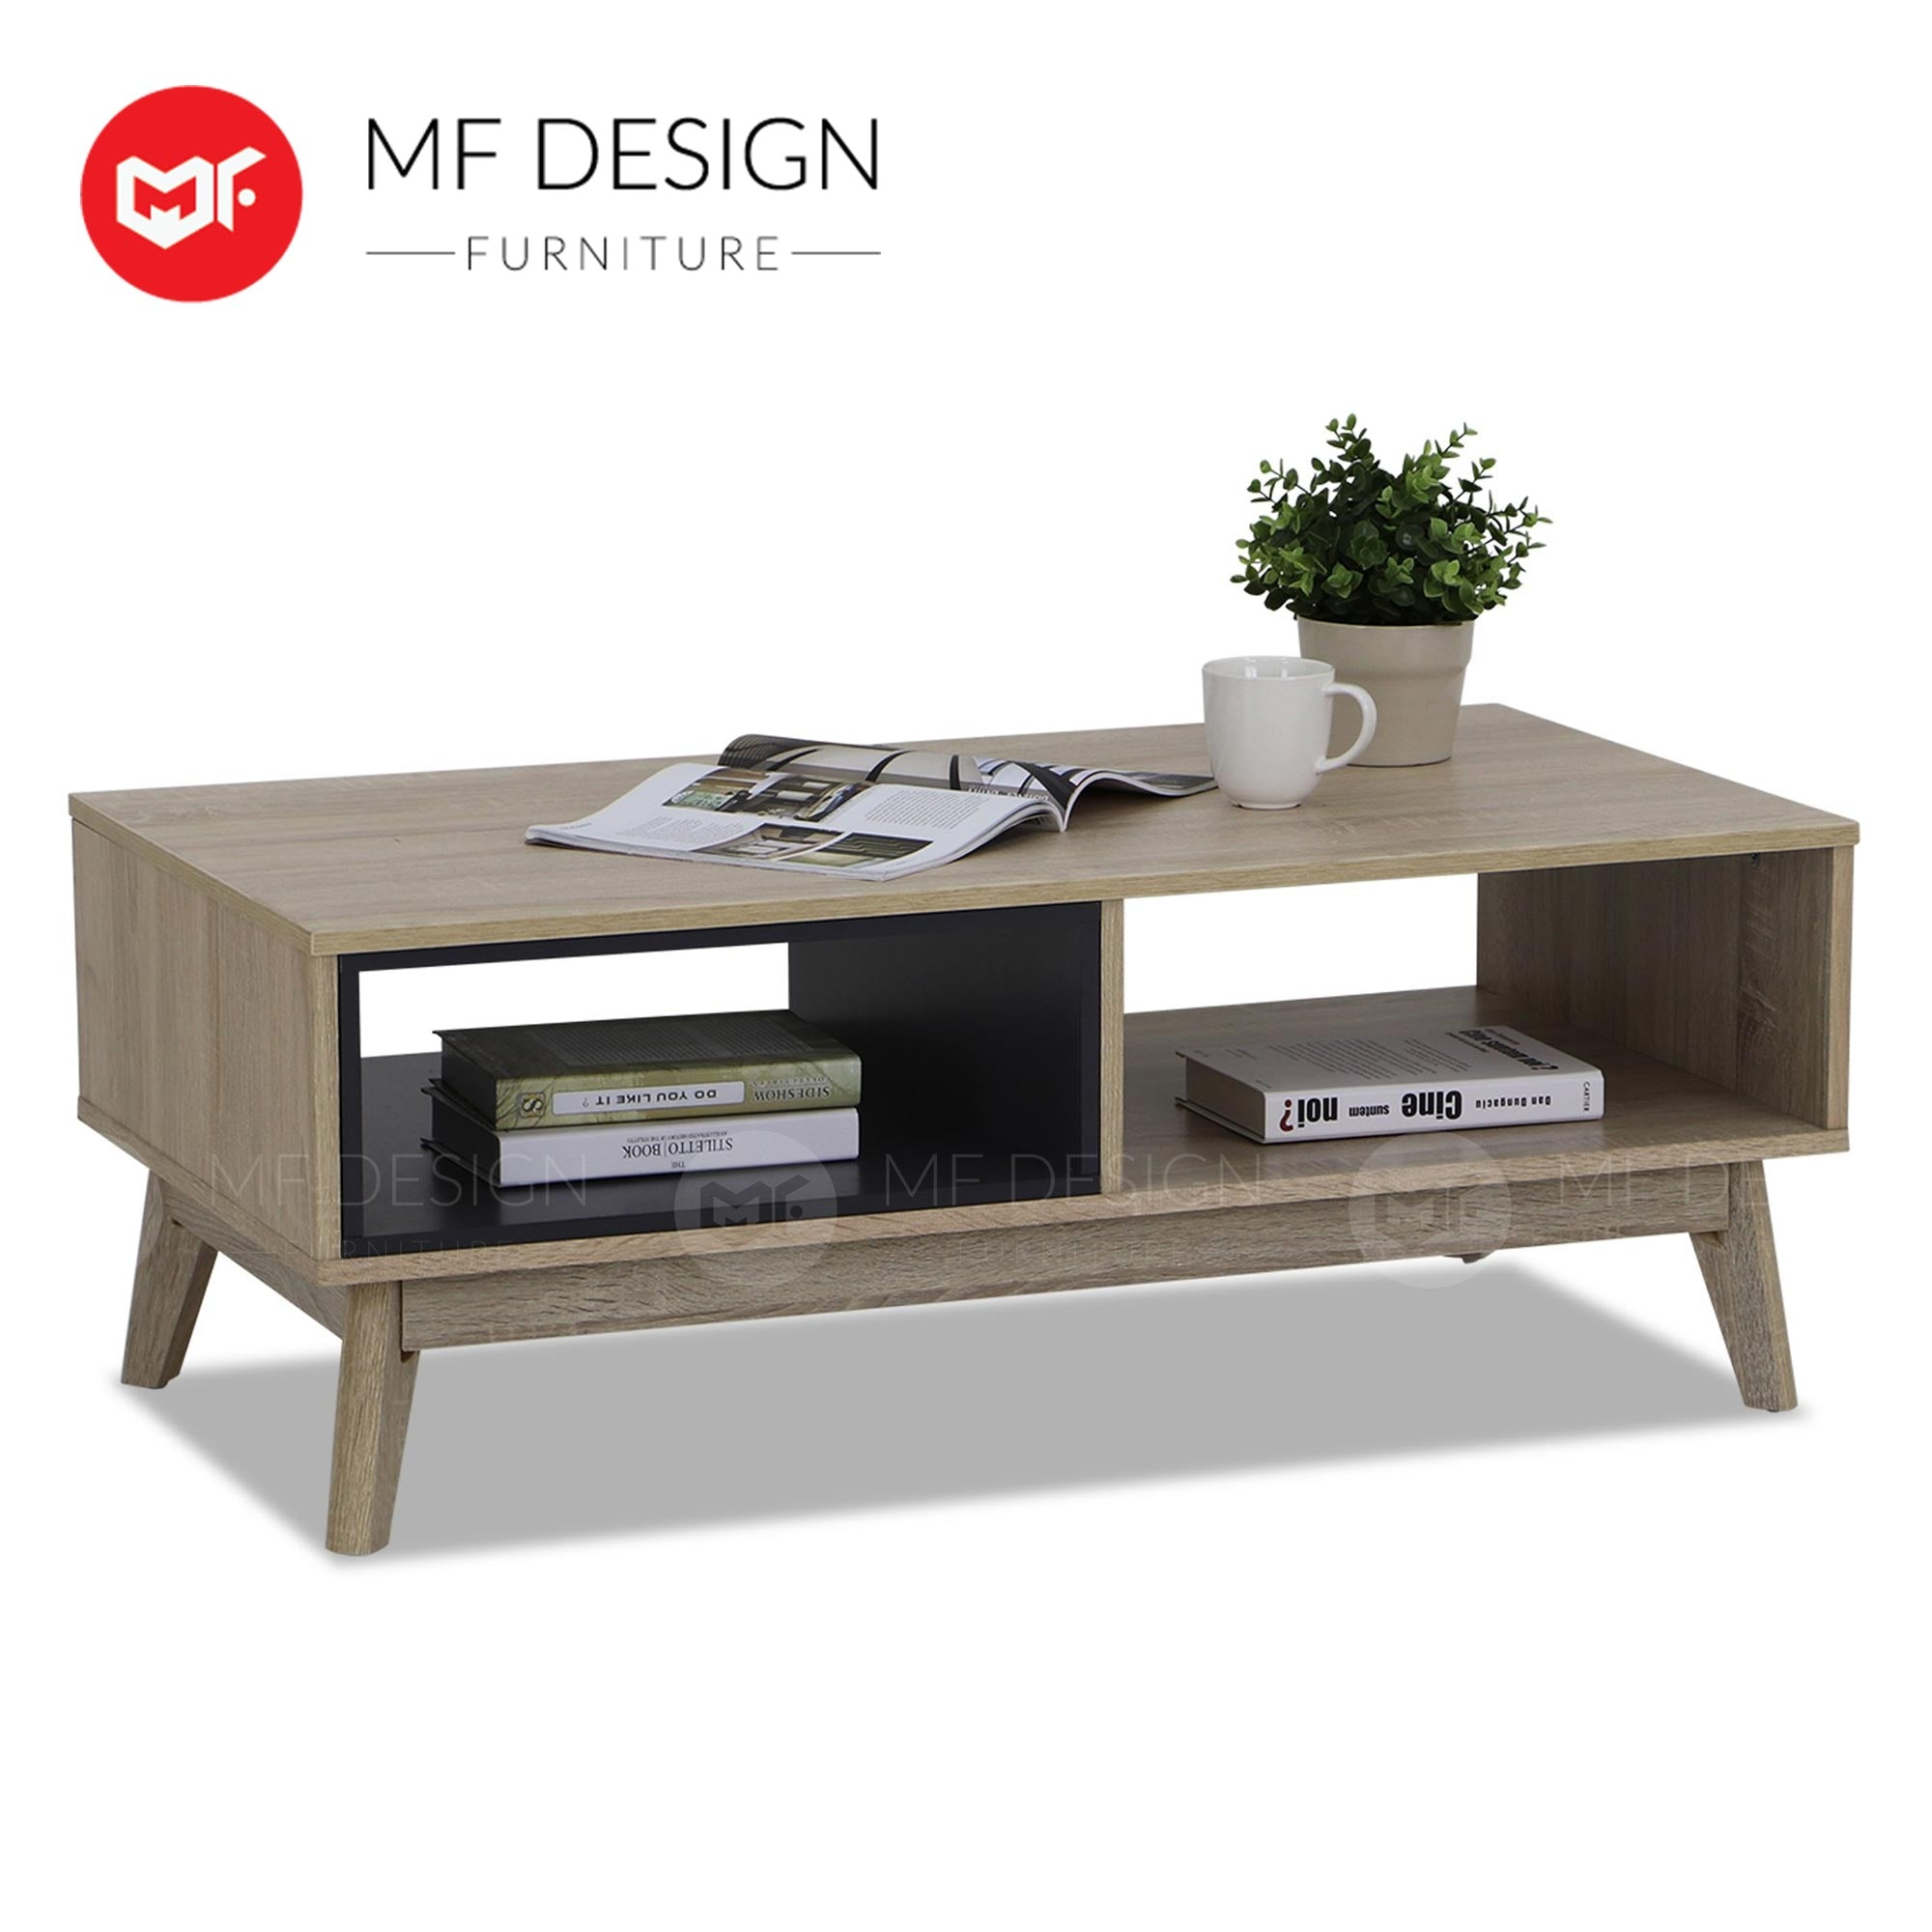 FILLO COFFEE TABLE (SCANDINAVIAN STYLE)